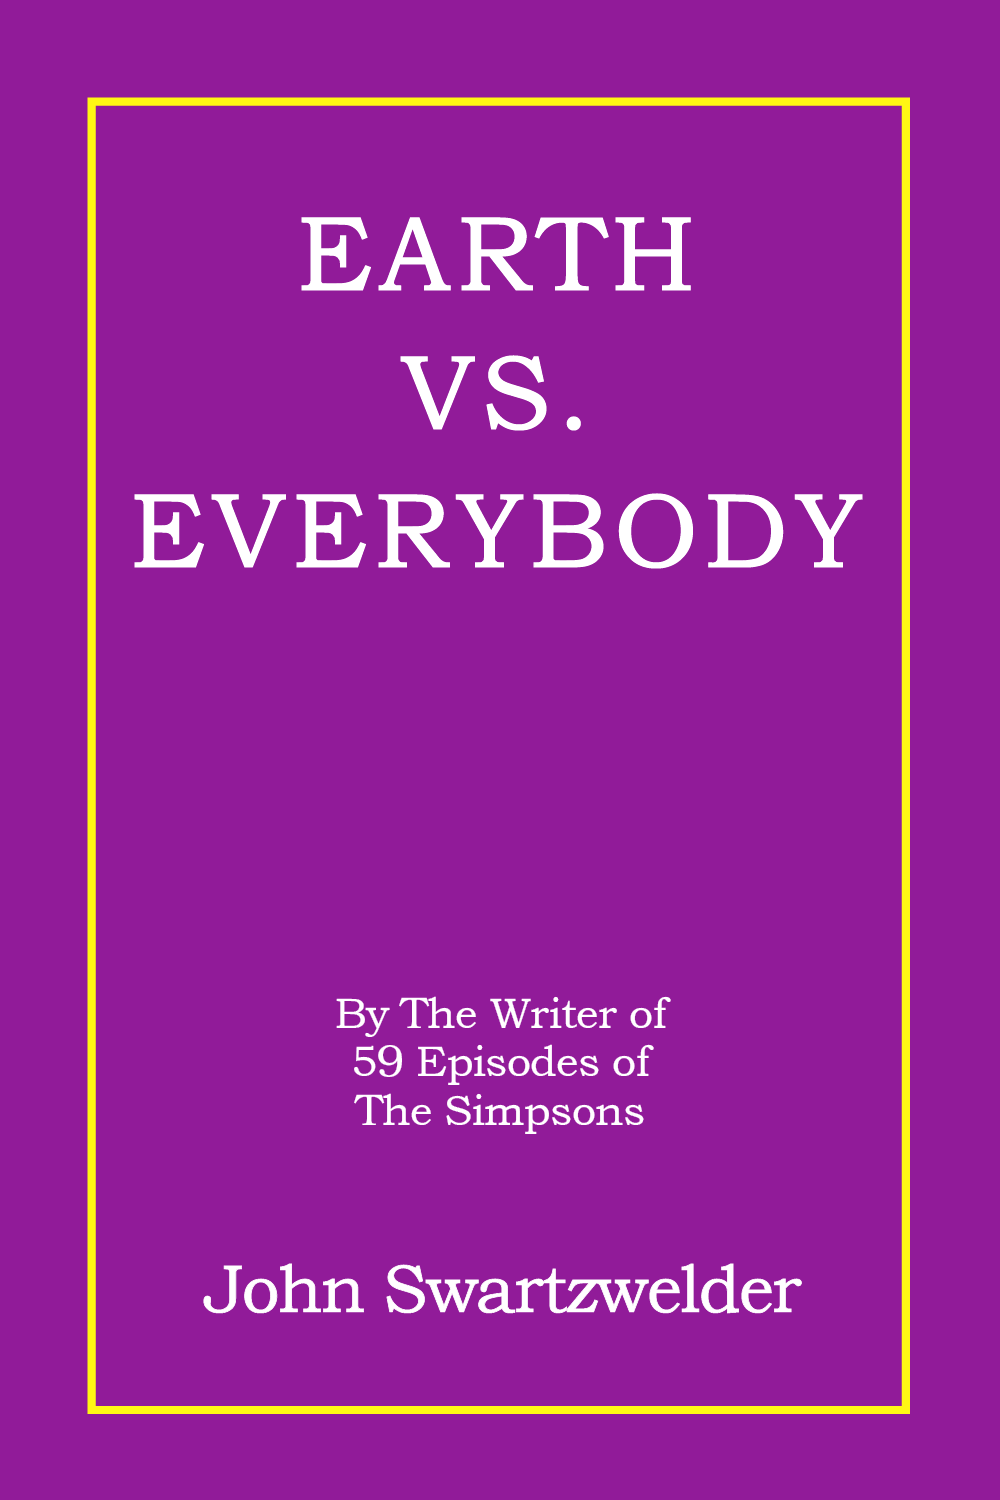 Earth vs. Everybody by John Swartzwelder